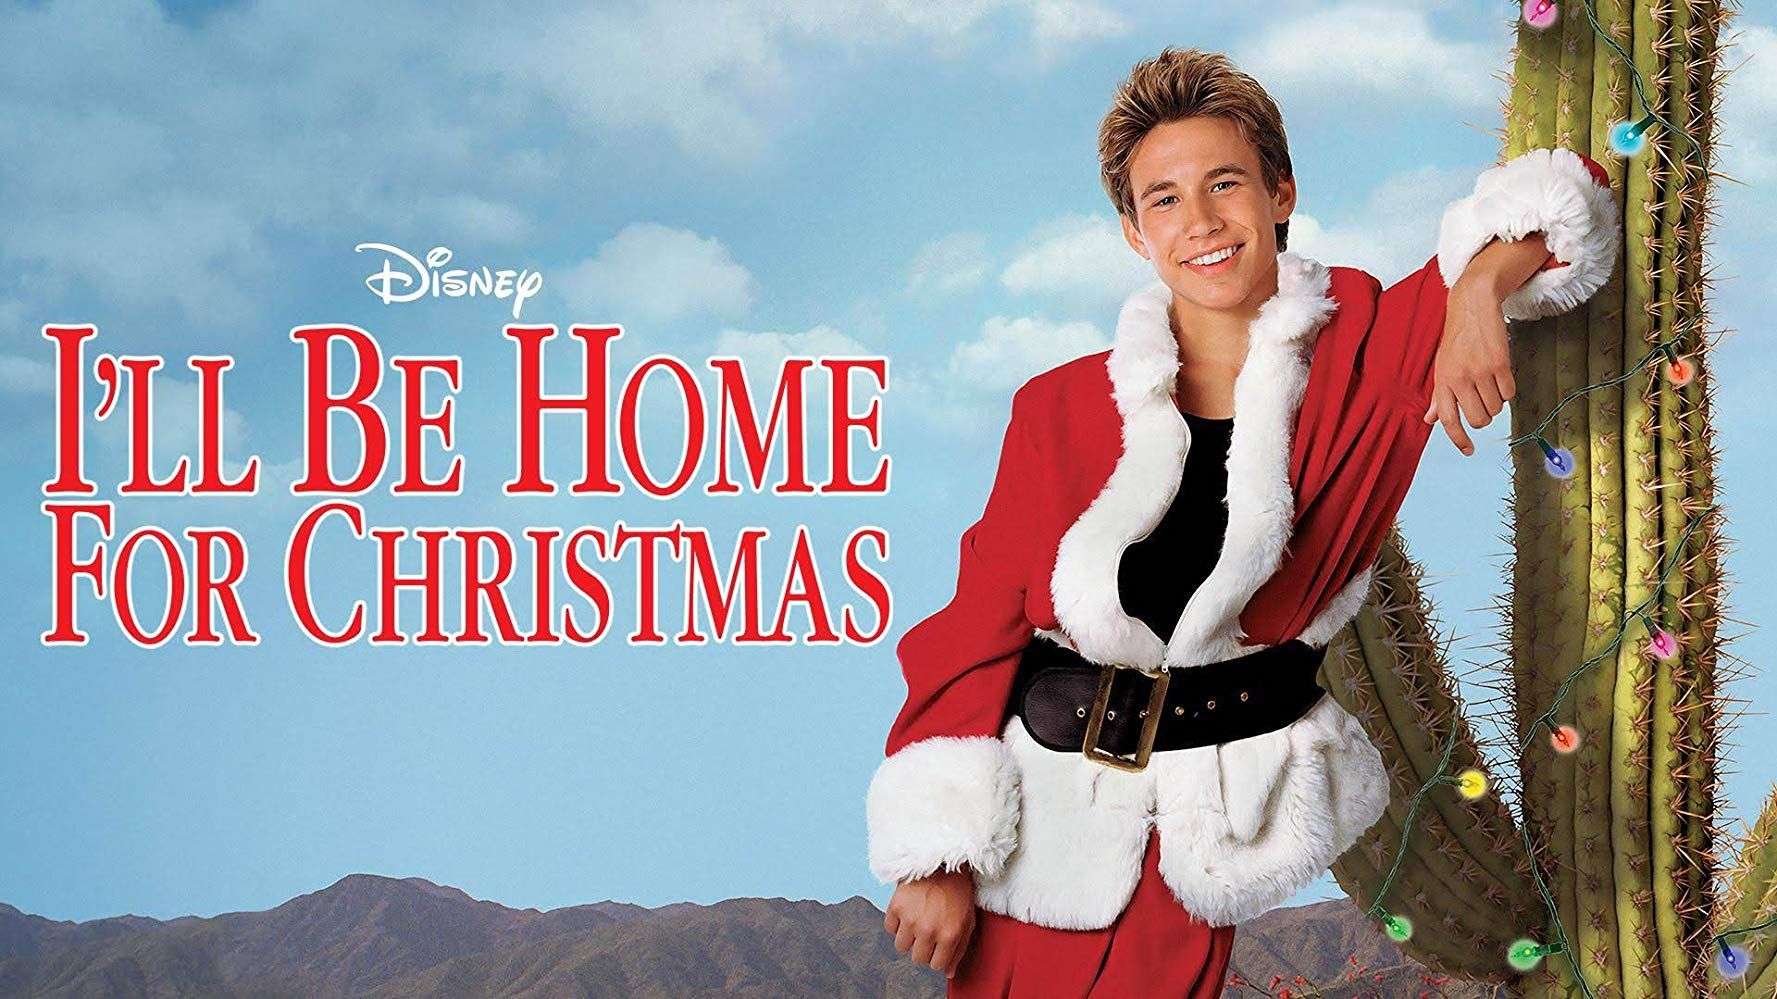 Updated 30 All Time Best Disney Christmas Movies November 2020 Disney Christmas Movies Christmas Movies Disney Christmas